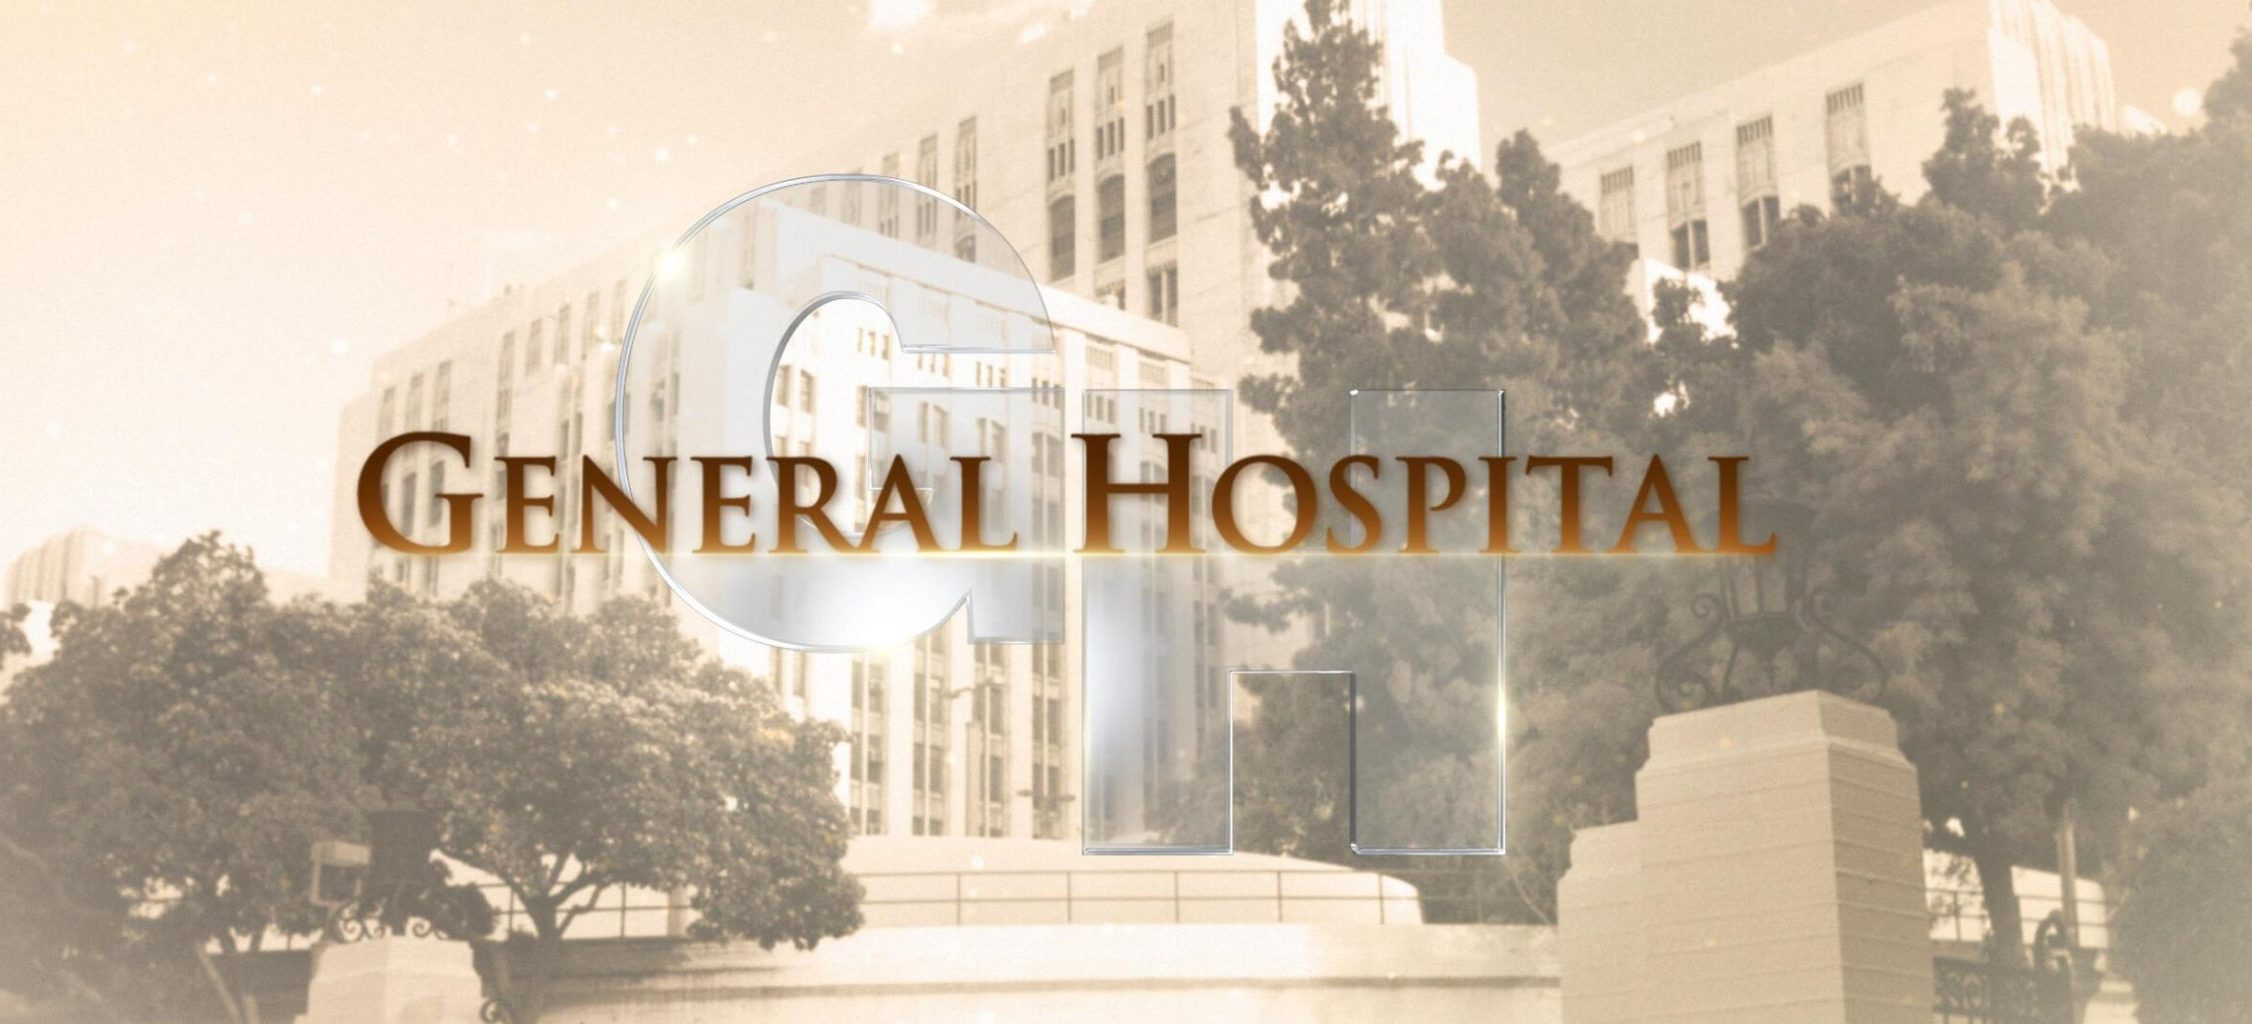 Gh Who Died On Halloween Trailer 2020 ABC Previews General Hospital's Halloween Episode | Michael Fairman TV